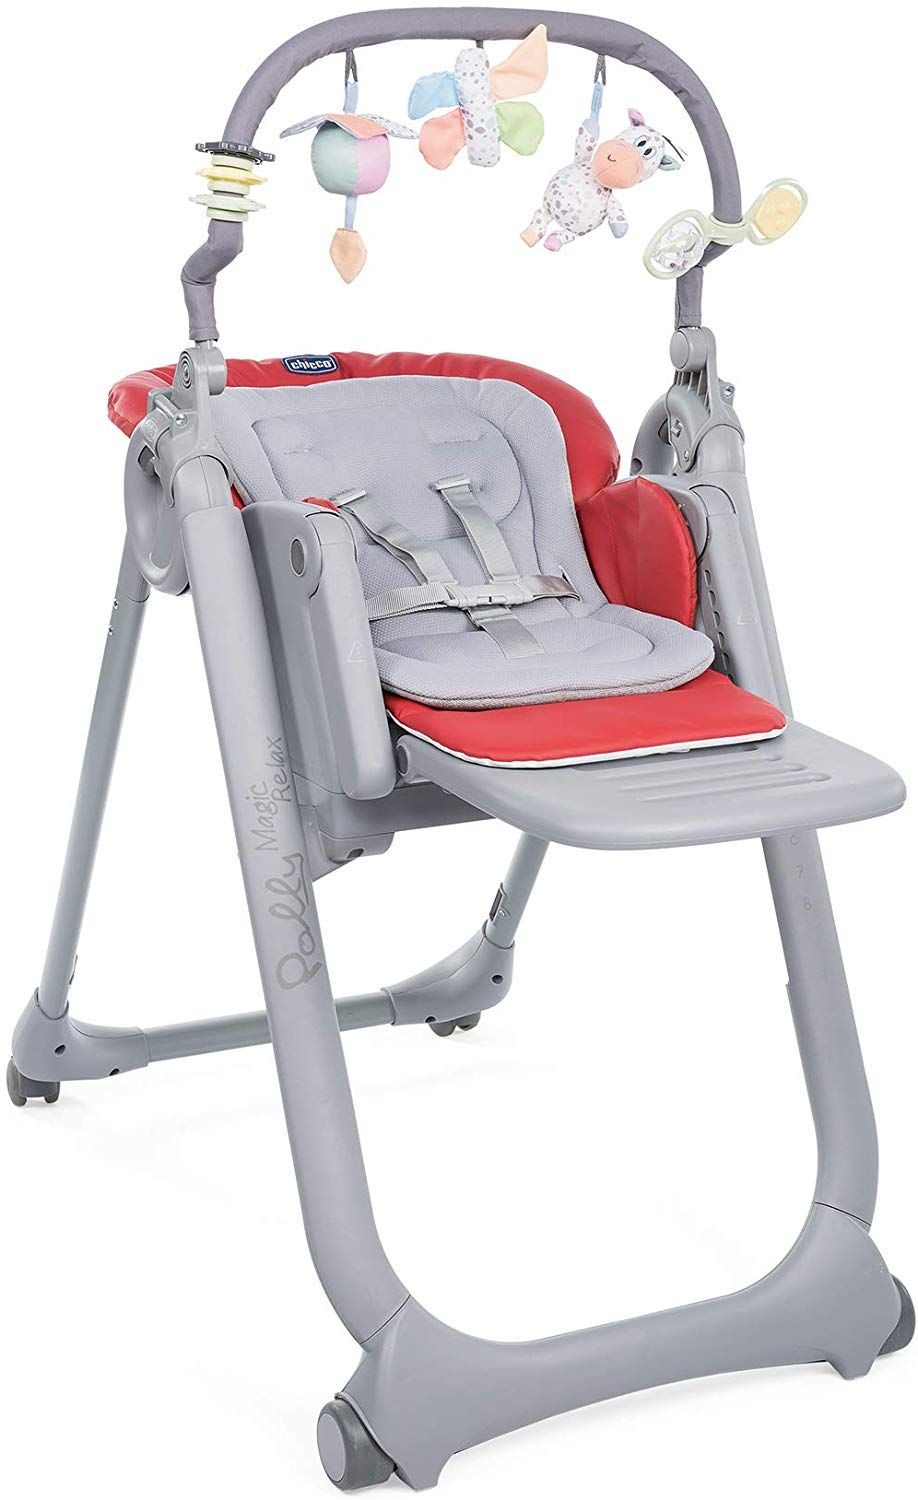 Chicco Chaise Haute Bebe Polly Magic Relax 4 Roues Scarlet Dossier Inclinable Amazon Fr Bebes Puericul Chaise Haute Chaise Haute Enfant Chaise Haute Bebe